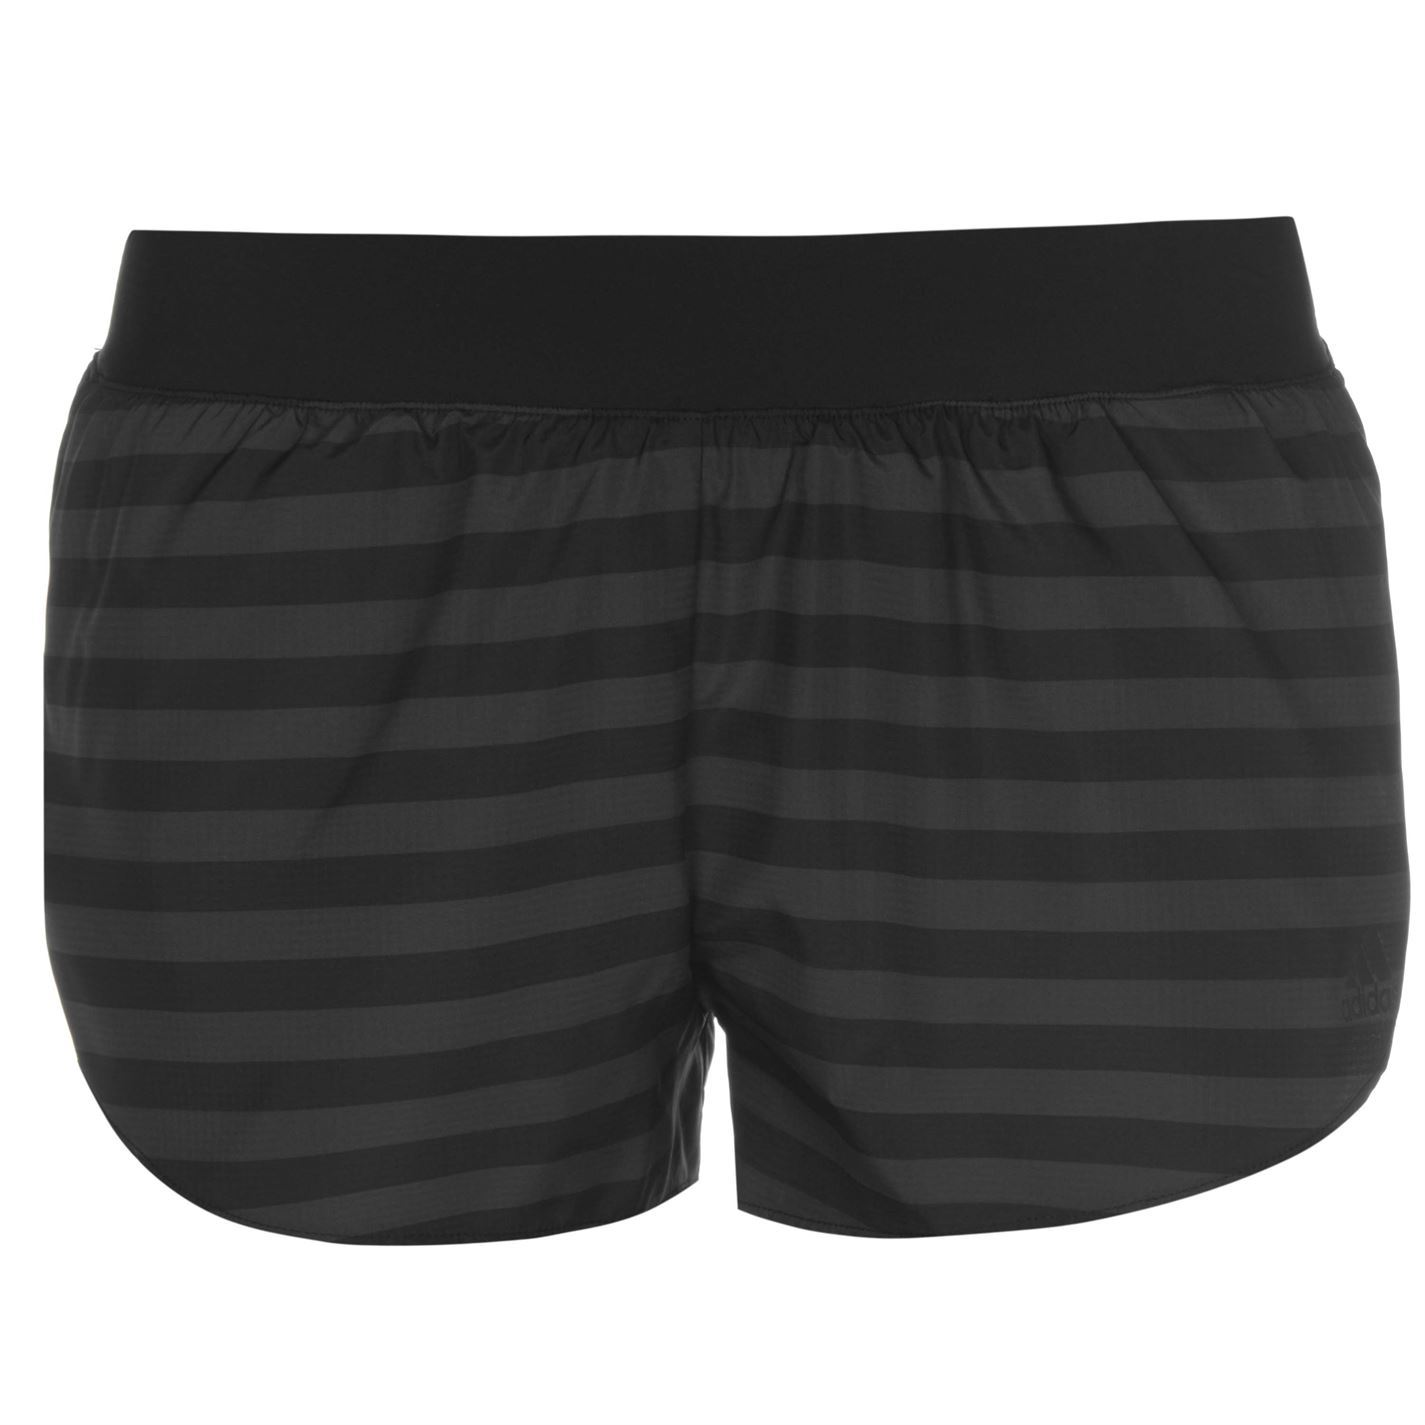 The Adidas Azero Ladies Shorts are designed to make sure you perform your  best when in training. 29d43d5d7f59